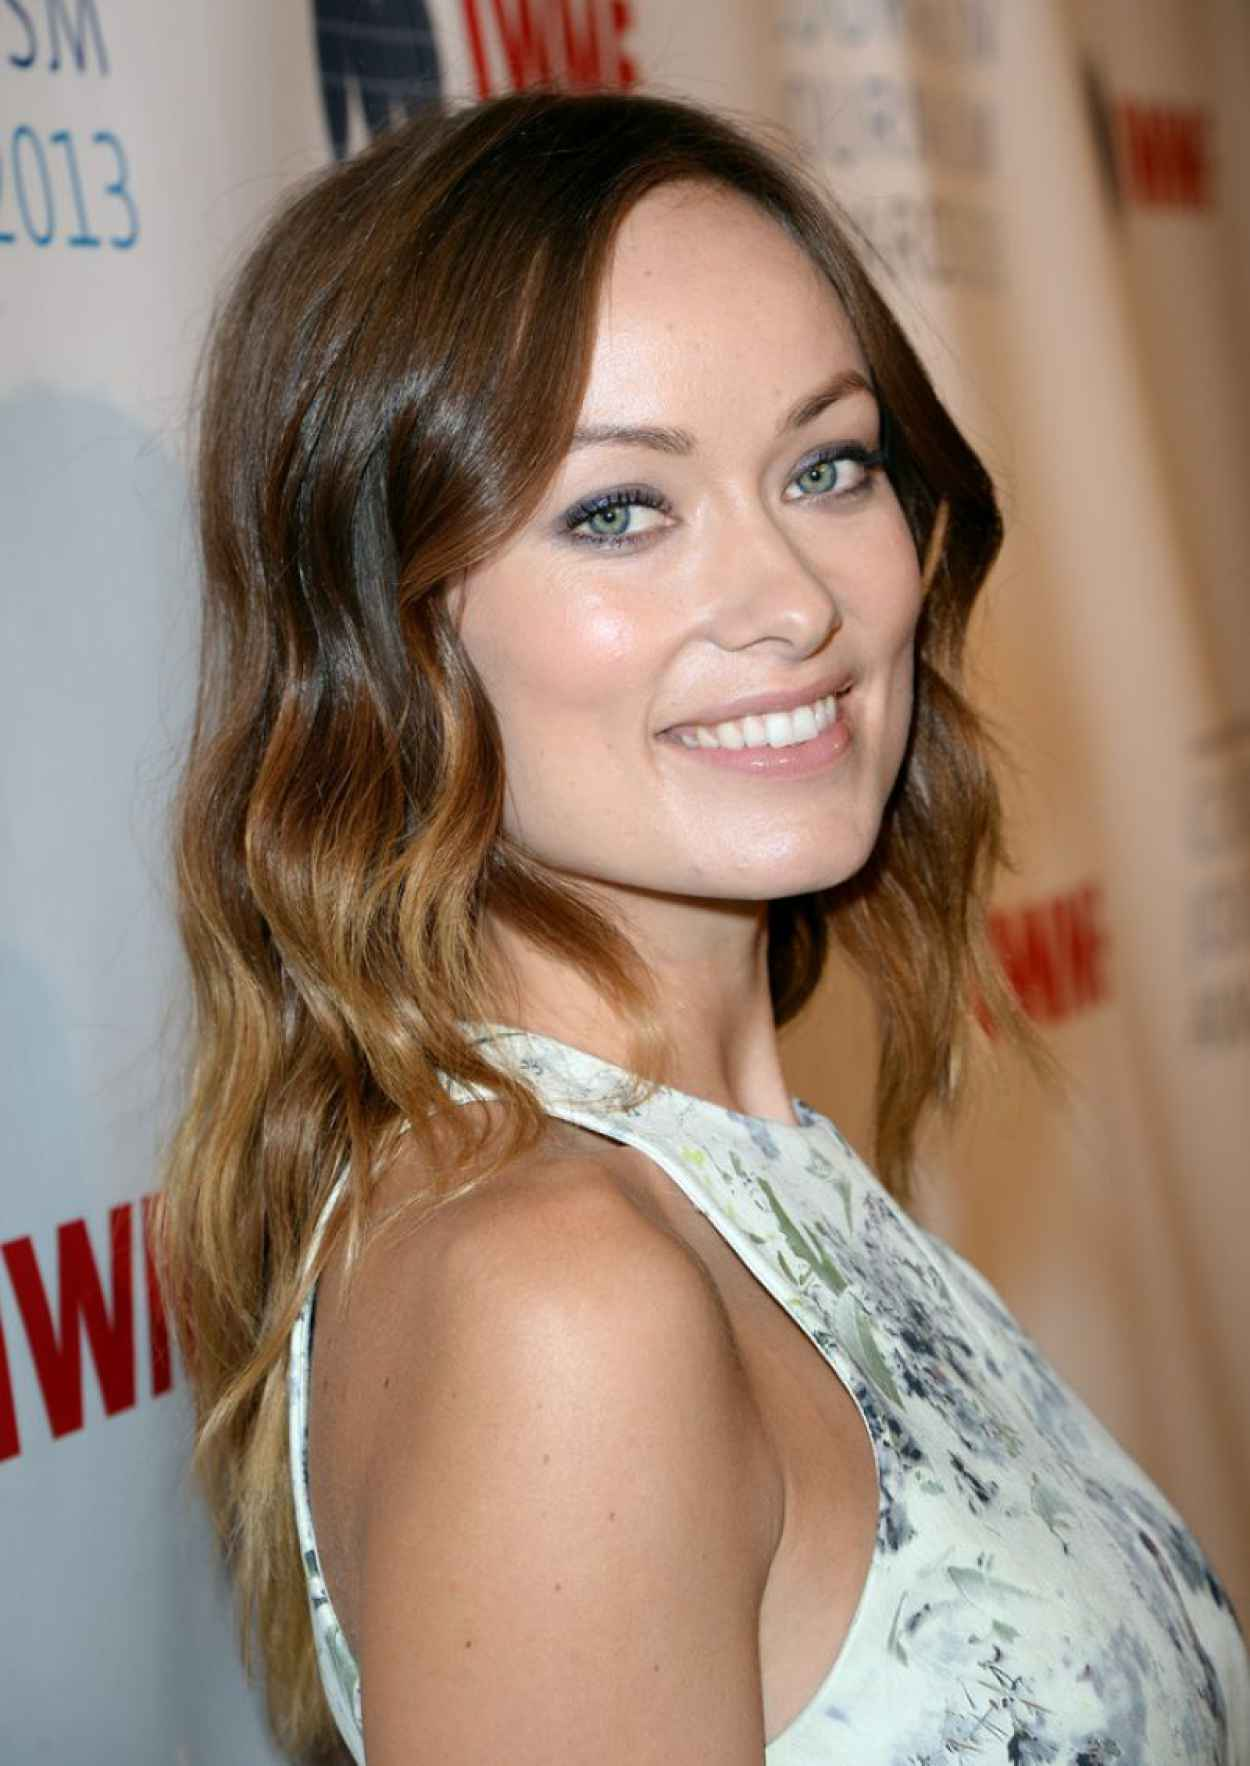 Olivia Wilde at IWMF Journalism Awards-1